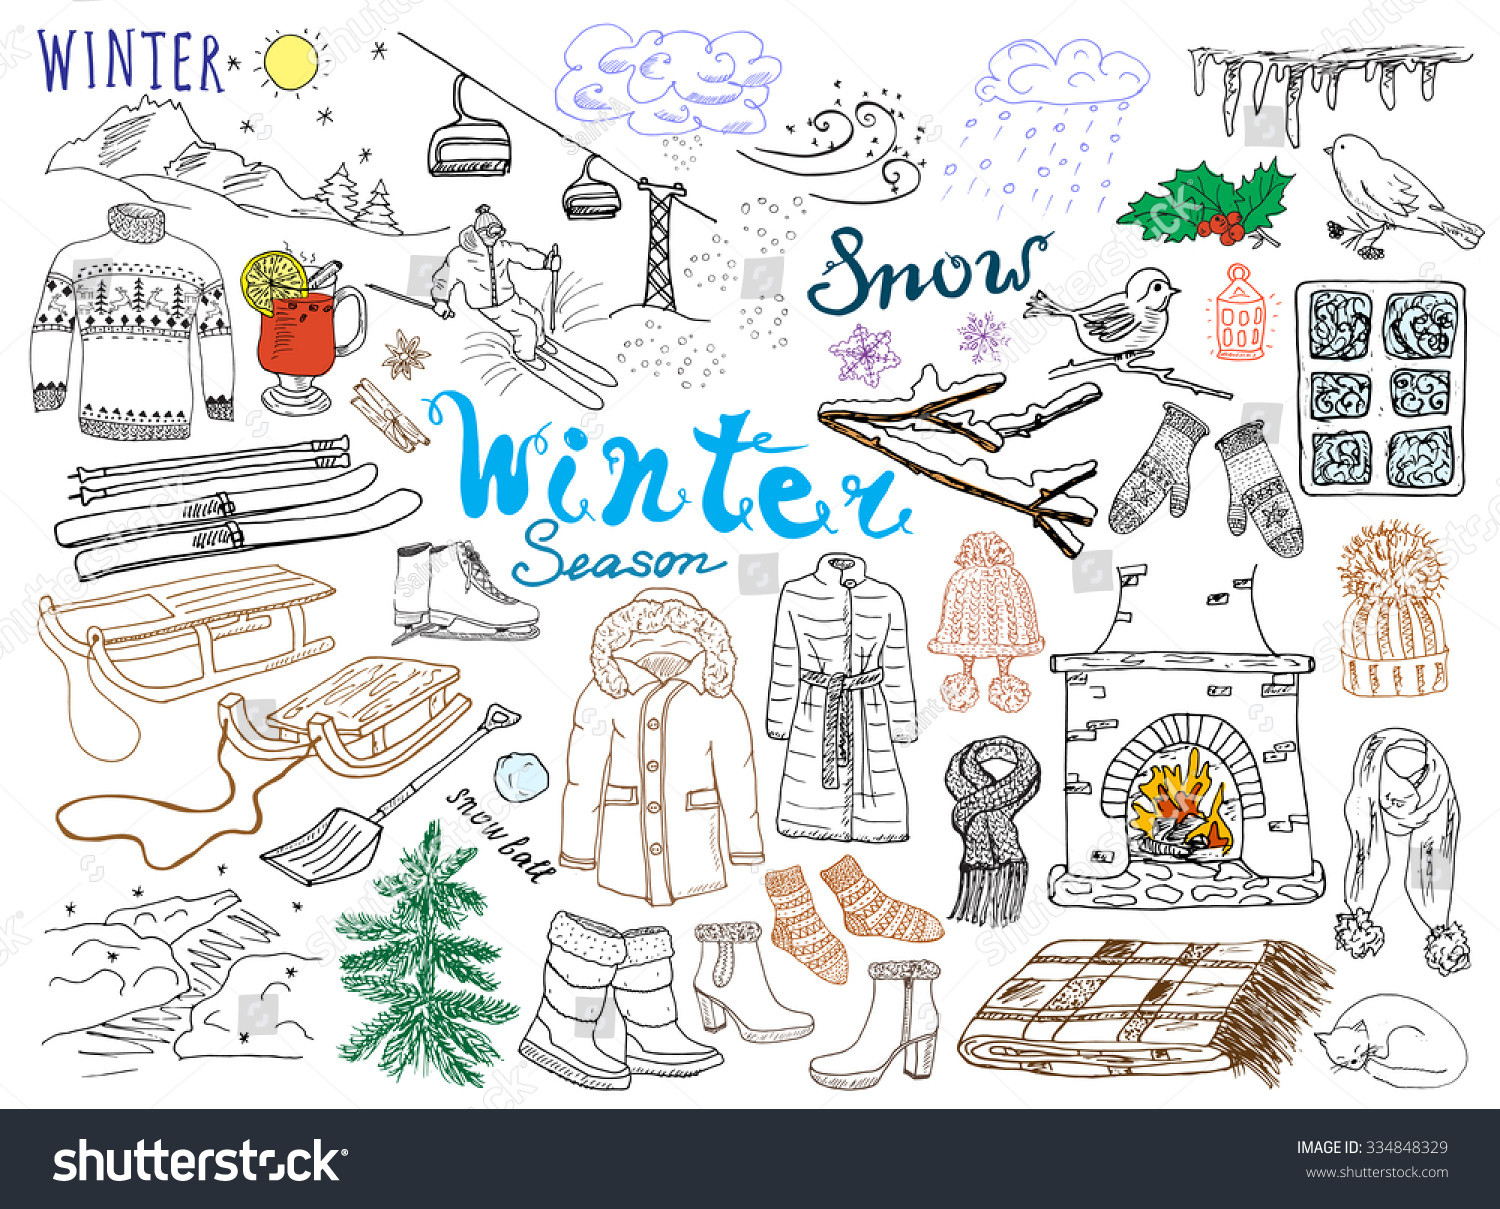 winter season set doodles elements hand stock vector wine bottle glass graphic red wine glass graphic